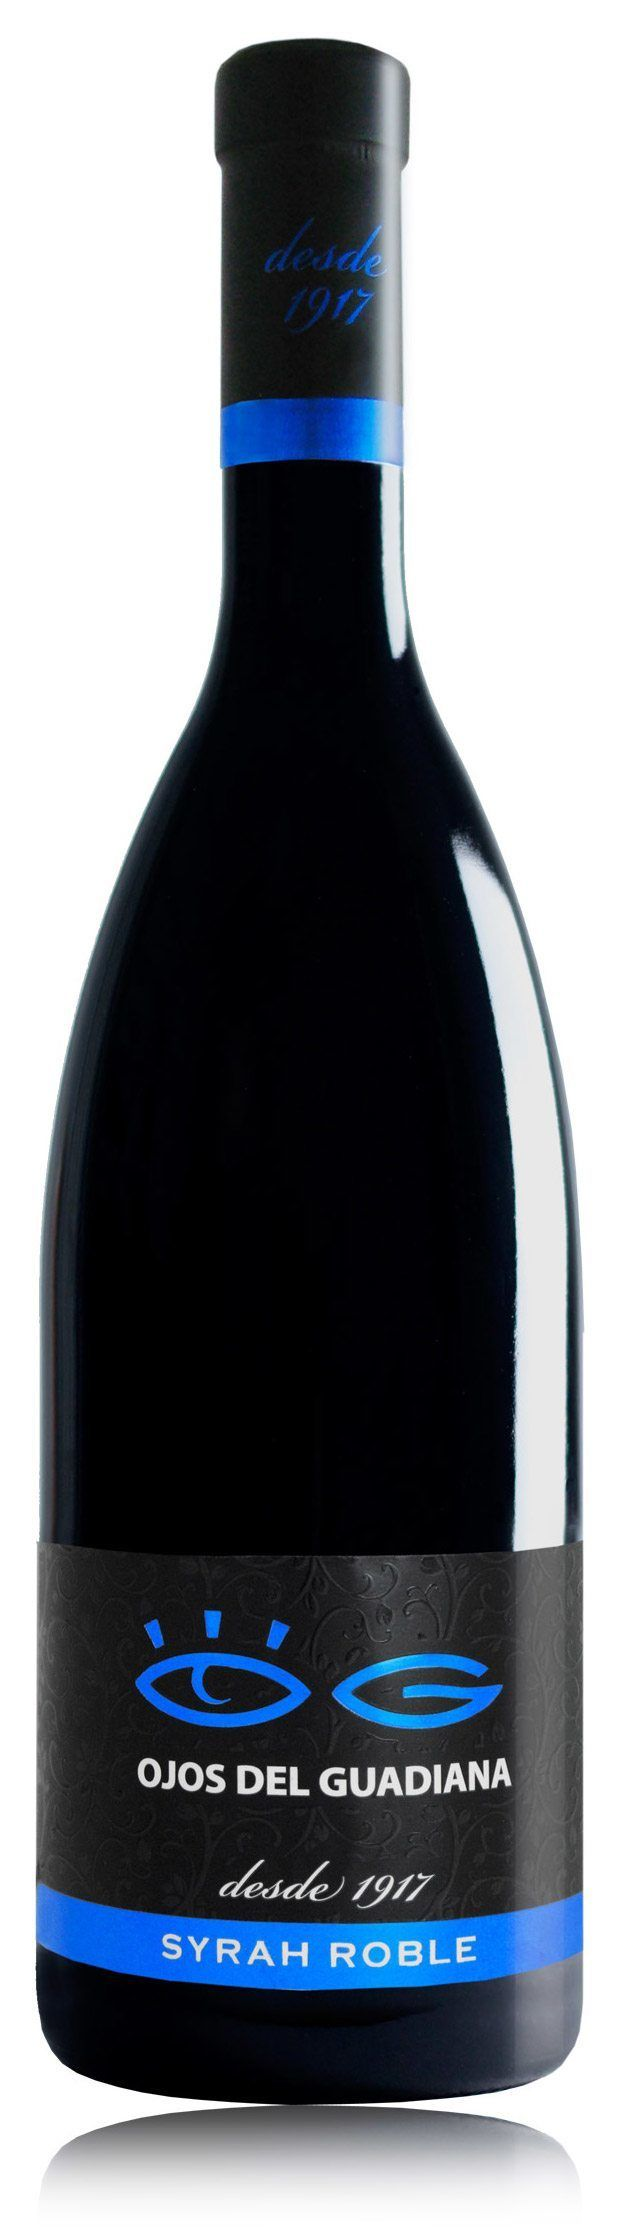 Vino Ojos del Guadiana Syrah Roble 750ml | bogar-wines.